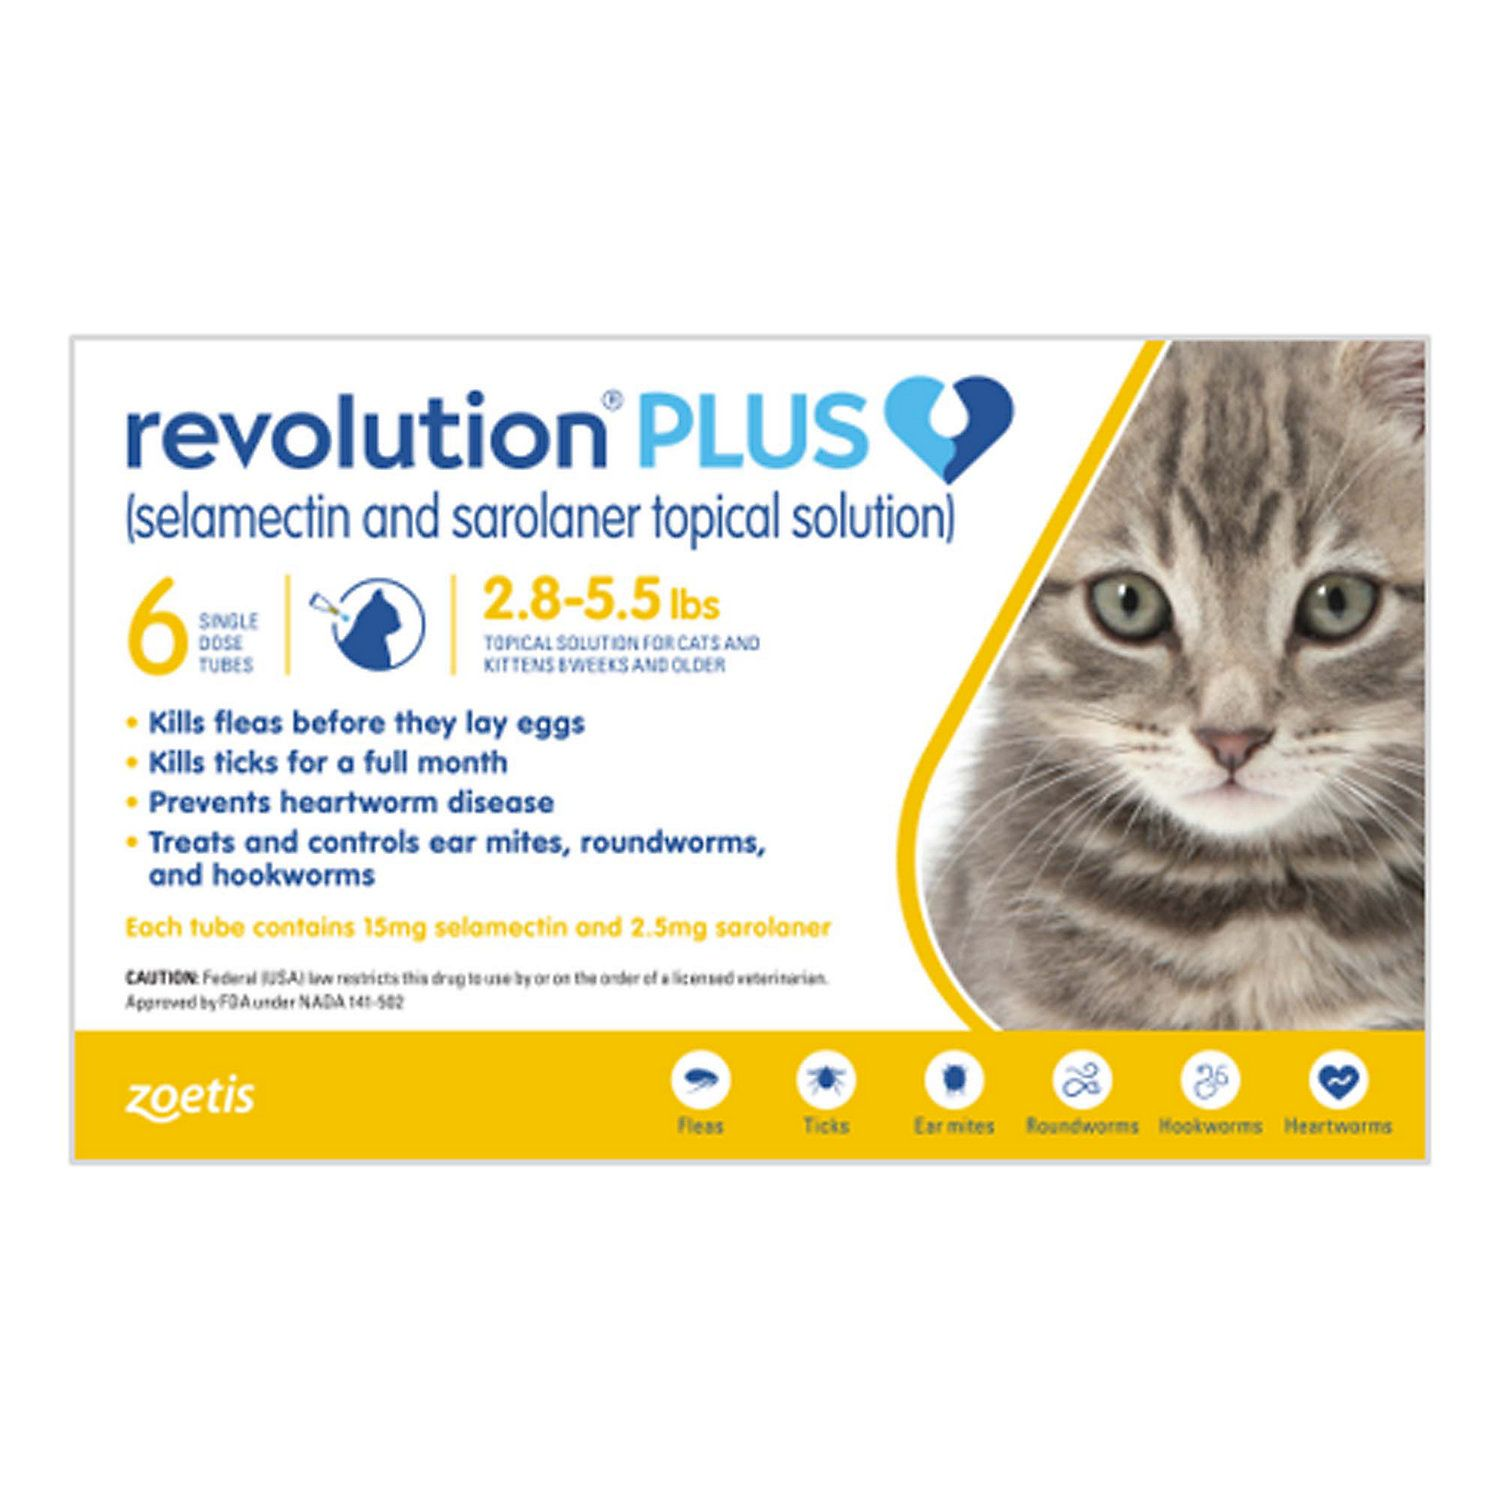 Revolution Plus Topical Solution 2 8 5 5lbs Cat Pack Of 6 Petco In 2020 Fleas Heartworm Topical